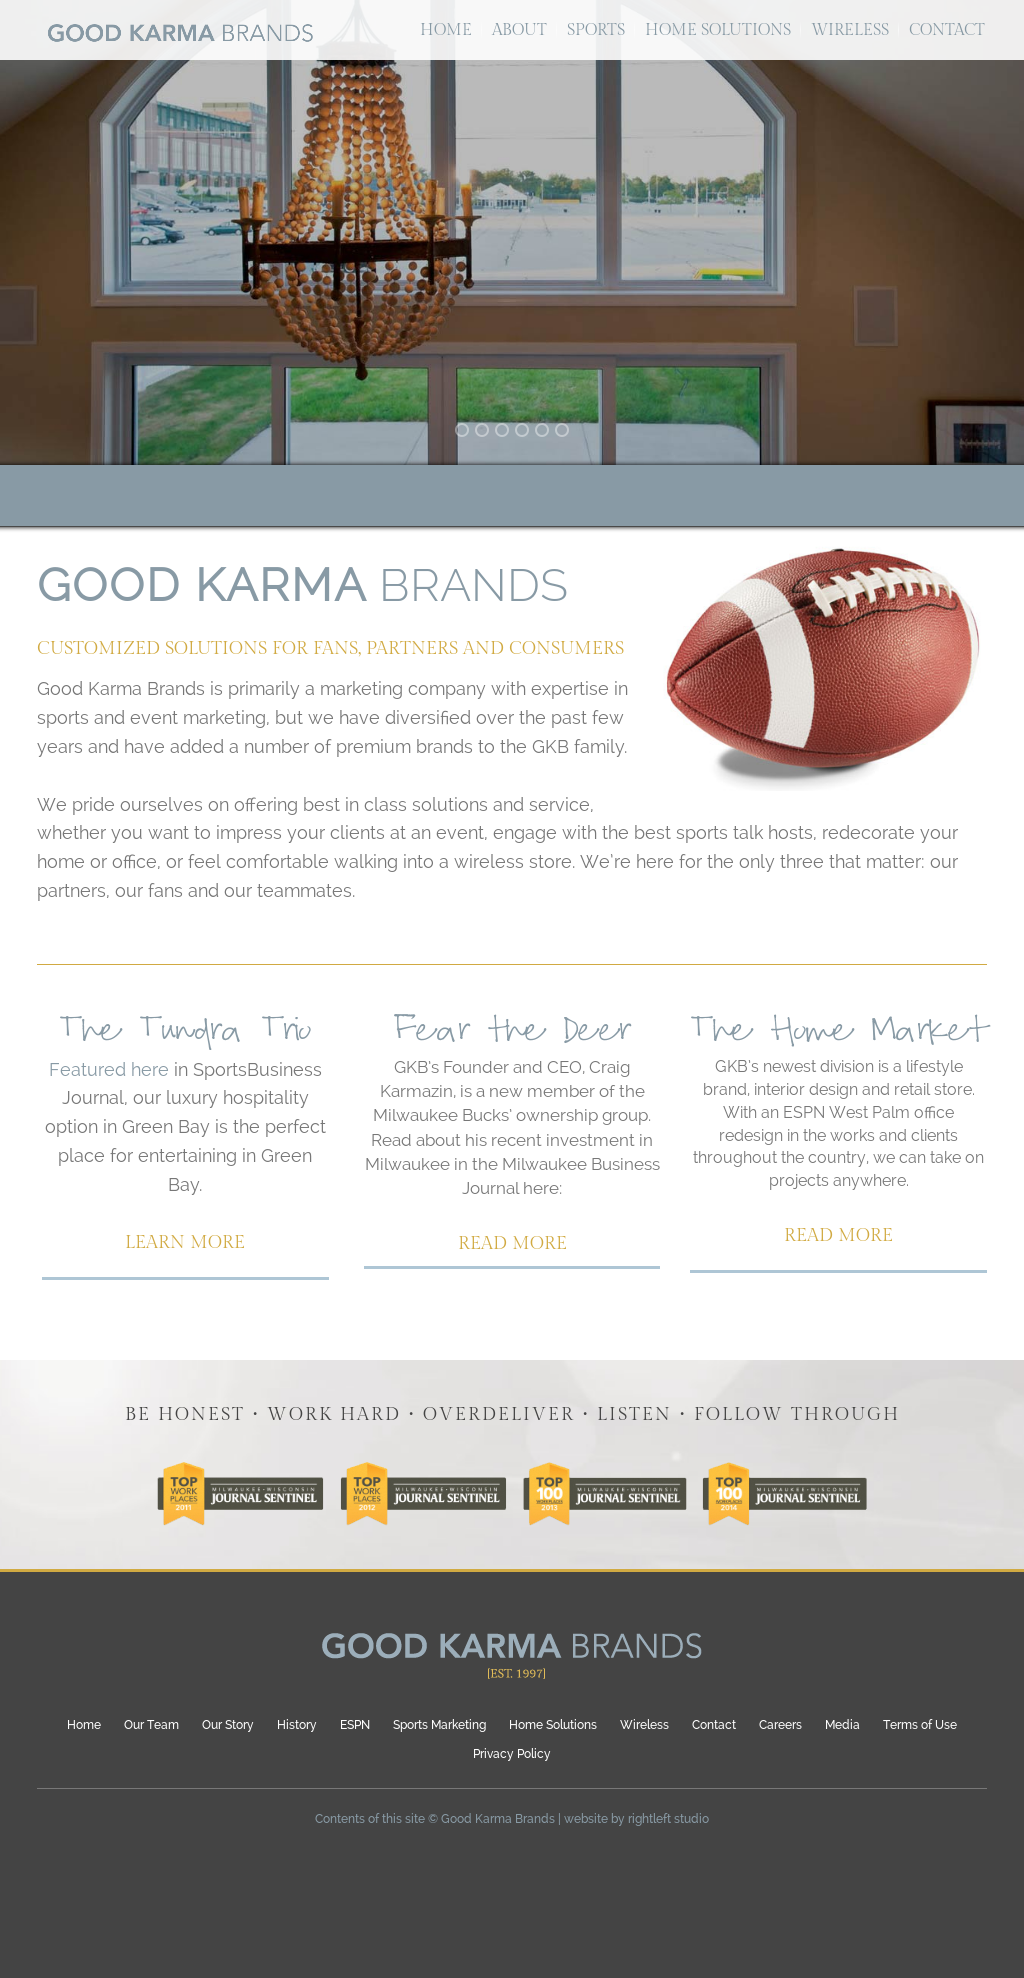 Goodkarmabrands Competitors, Revenue and Employees - Owler Company